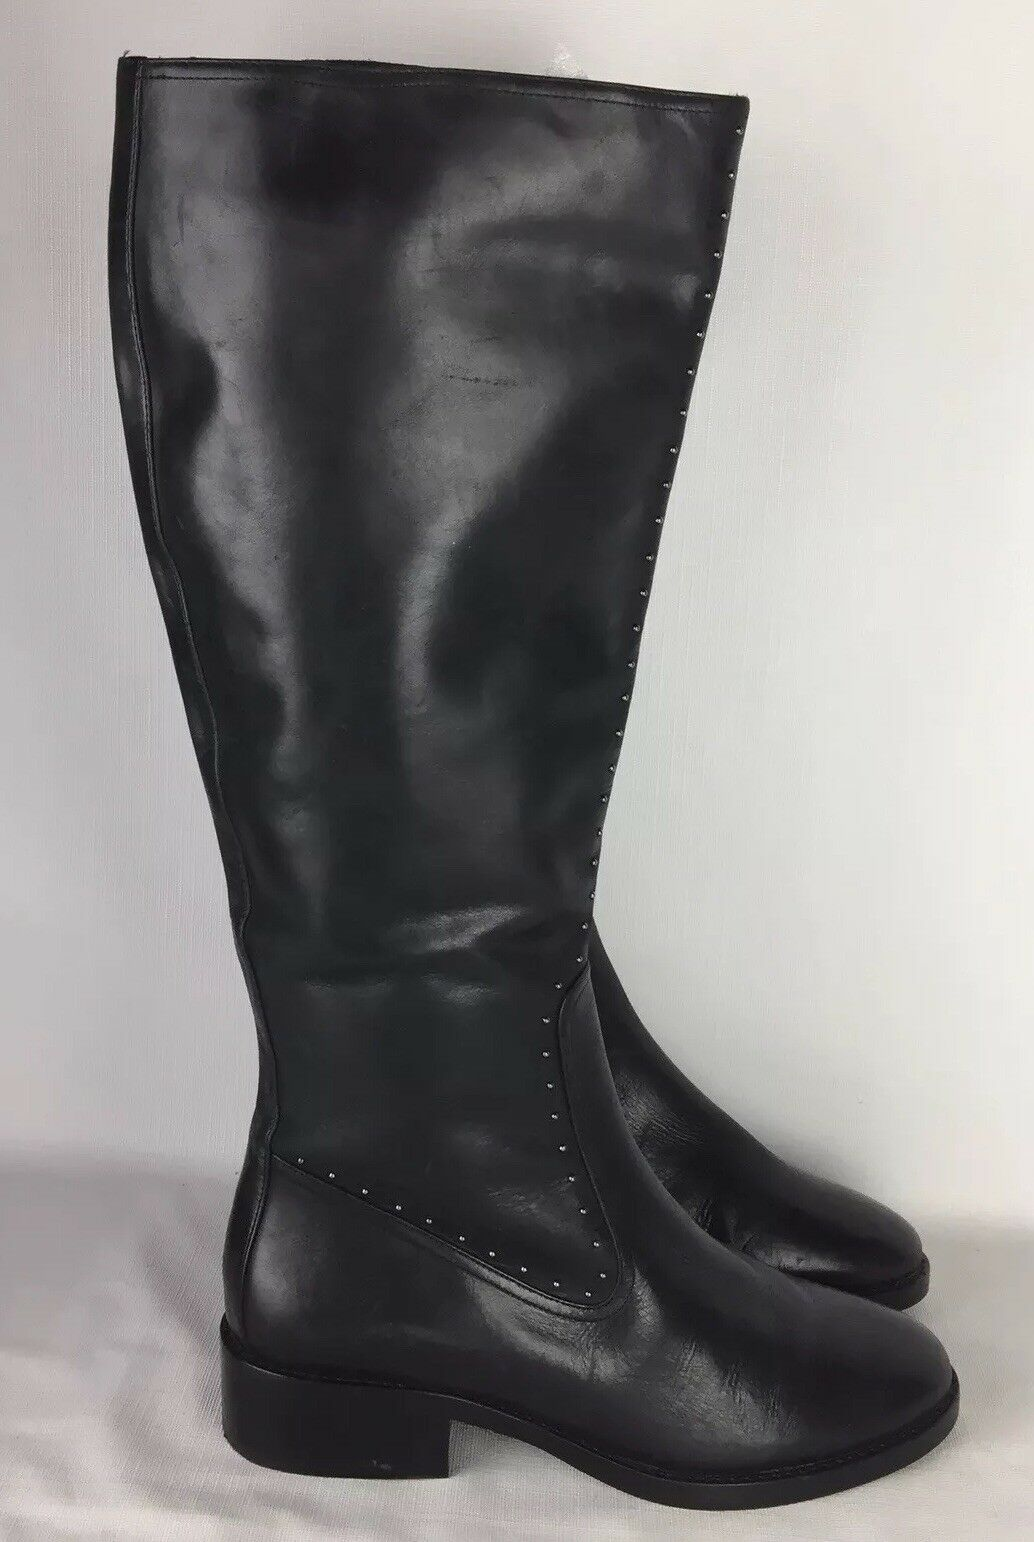 SAKS FIFTH FIFTH FIFTH AVEWOMANS BLACK LEATHERTALL RIDING BOOTS STUDS  450 7.5 7f64cf